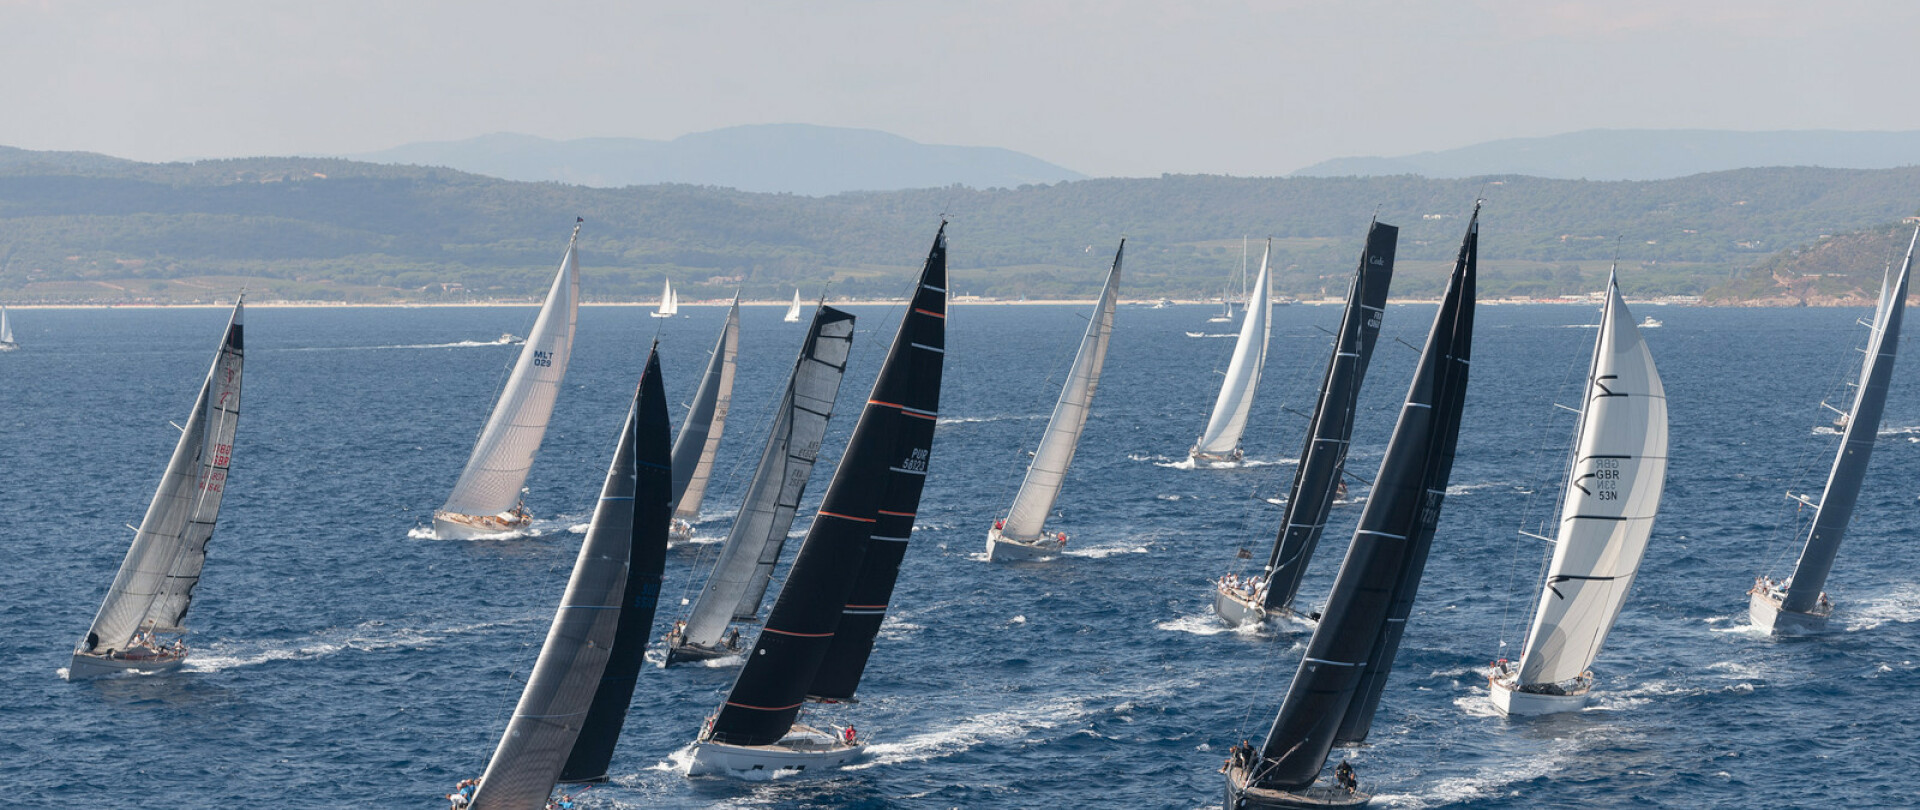 Follow Les Voiles de St Tropez onboard MENORCA photo 1